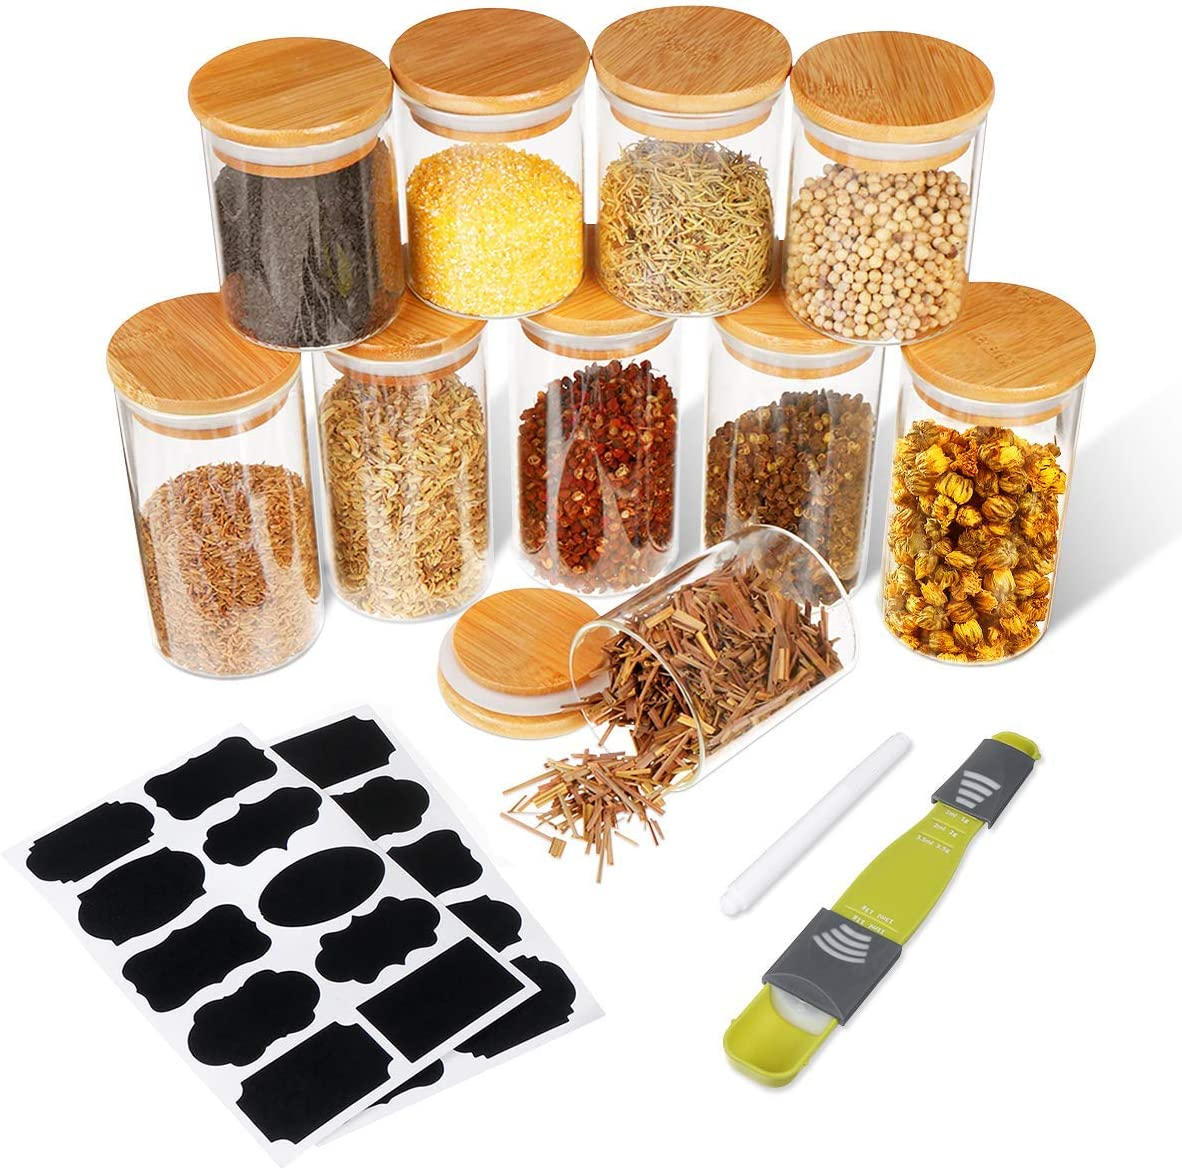 Small Glass Jars with Bamboo Lids, SAWAKE Airtight Canisters Set for Kitchen Pantry Organization, Clear Glass Food Storage Containers Set of 10 for Tea, Herbs, Spice, Salt (8.5oz x 5+11.8oz x 5)